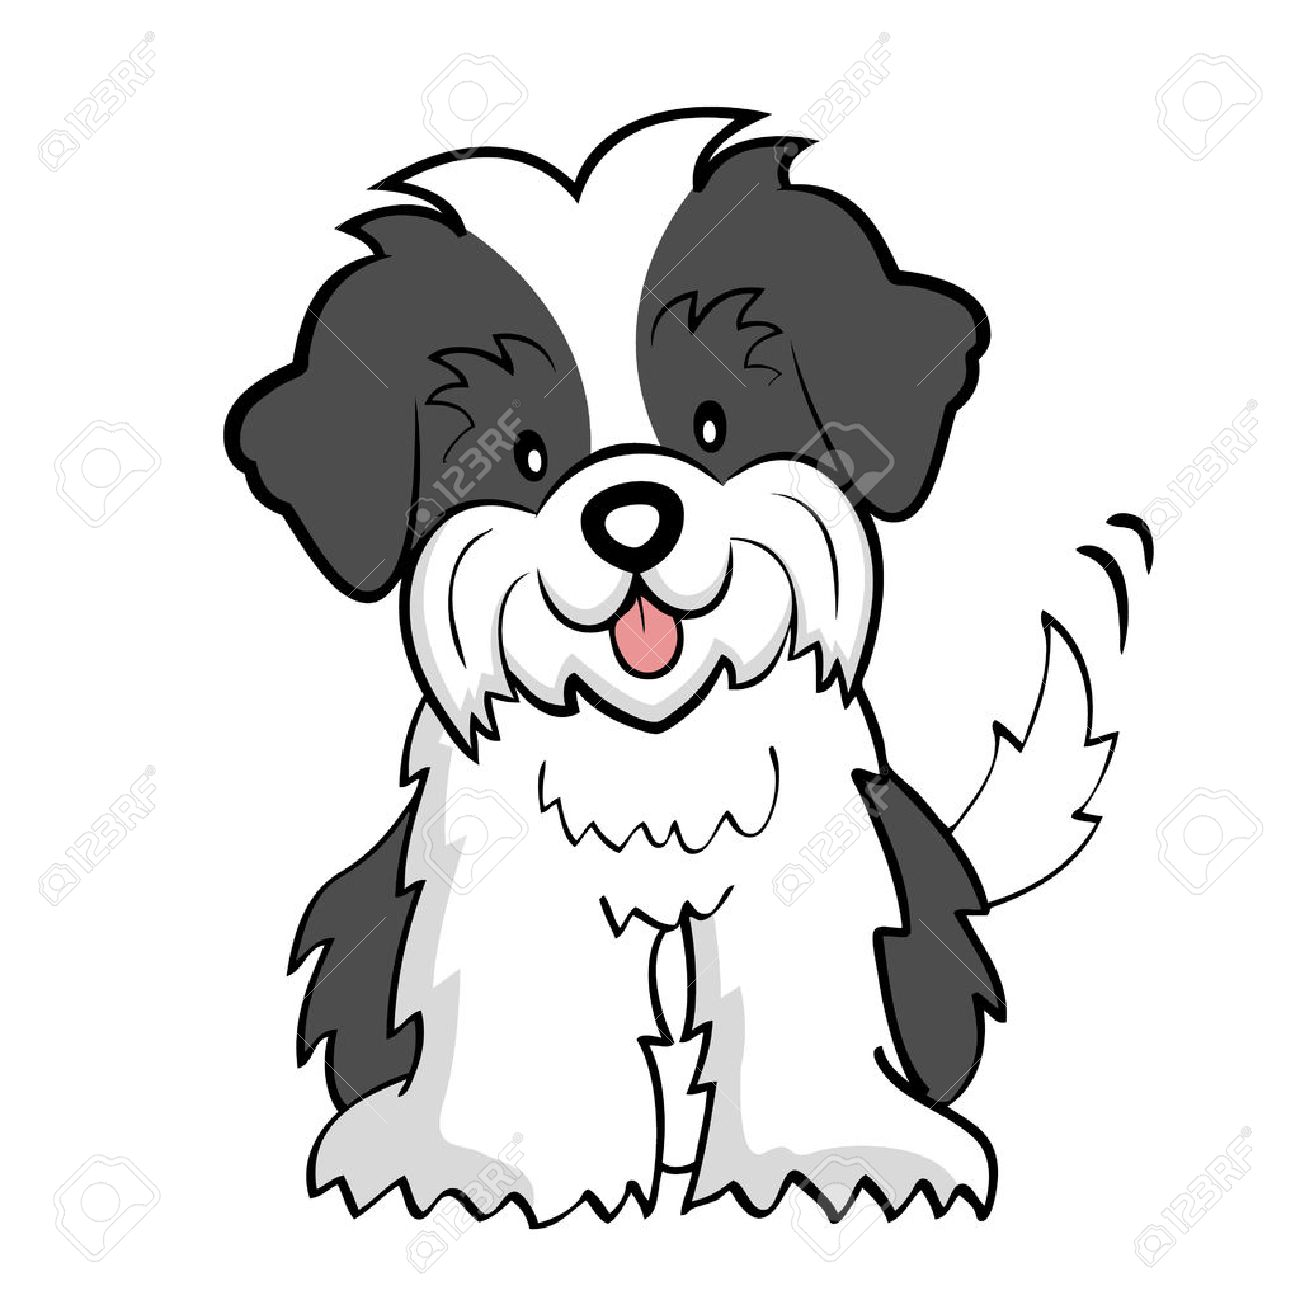 Puppy Cut Shih Tzu Isolated Royalty Free Cliparts Vectors And